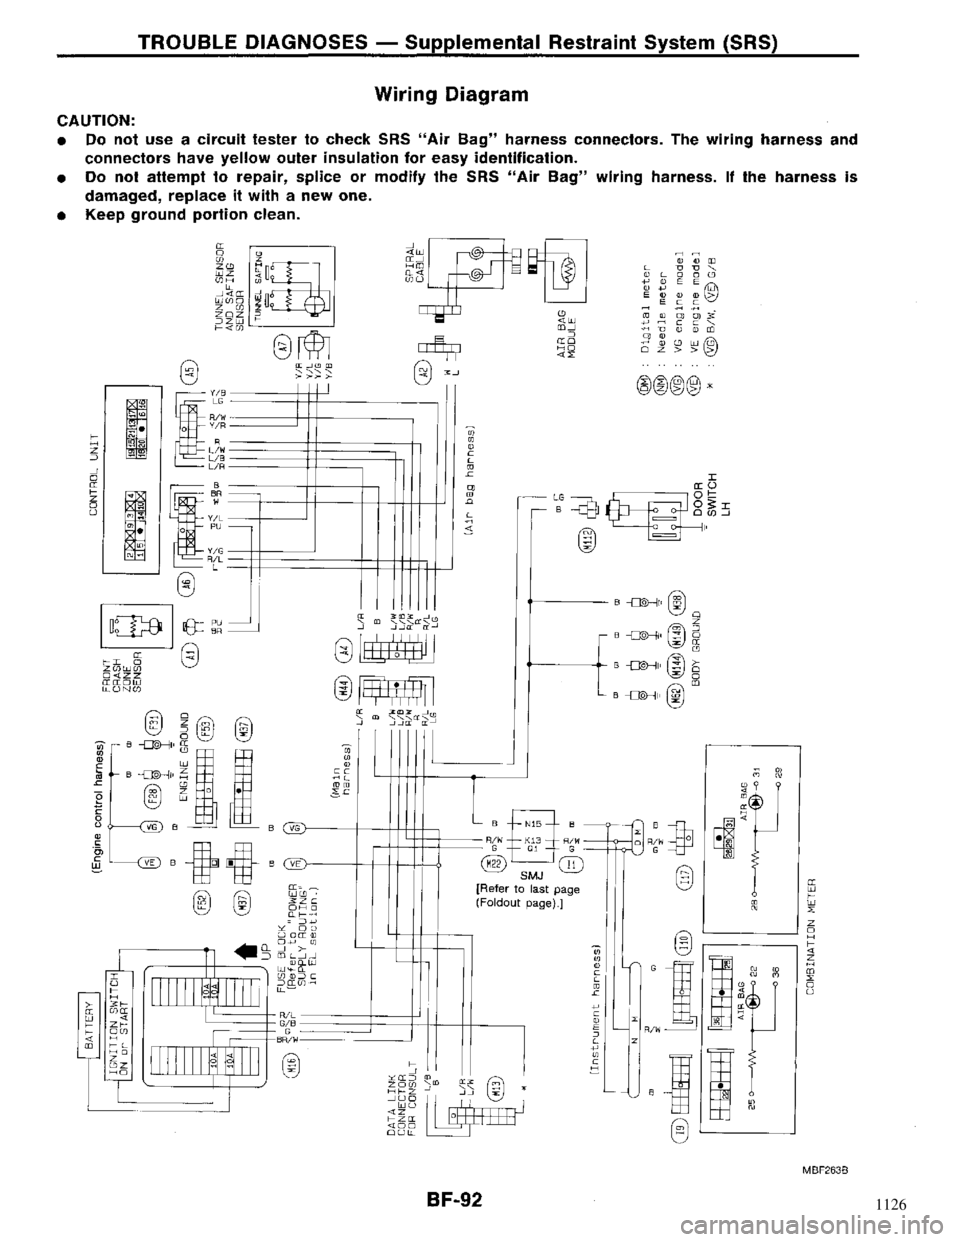 NISSAN MAXIMA 1994 A32 / 4.G Body Workshop Manual, Page 92